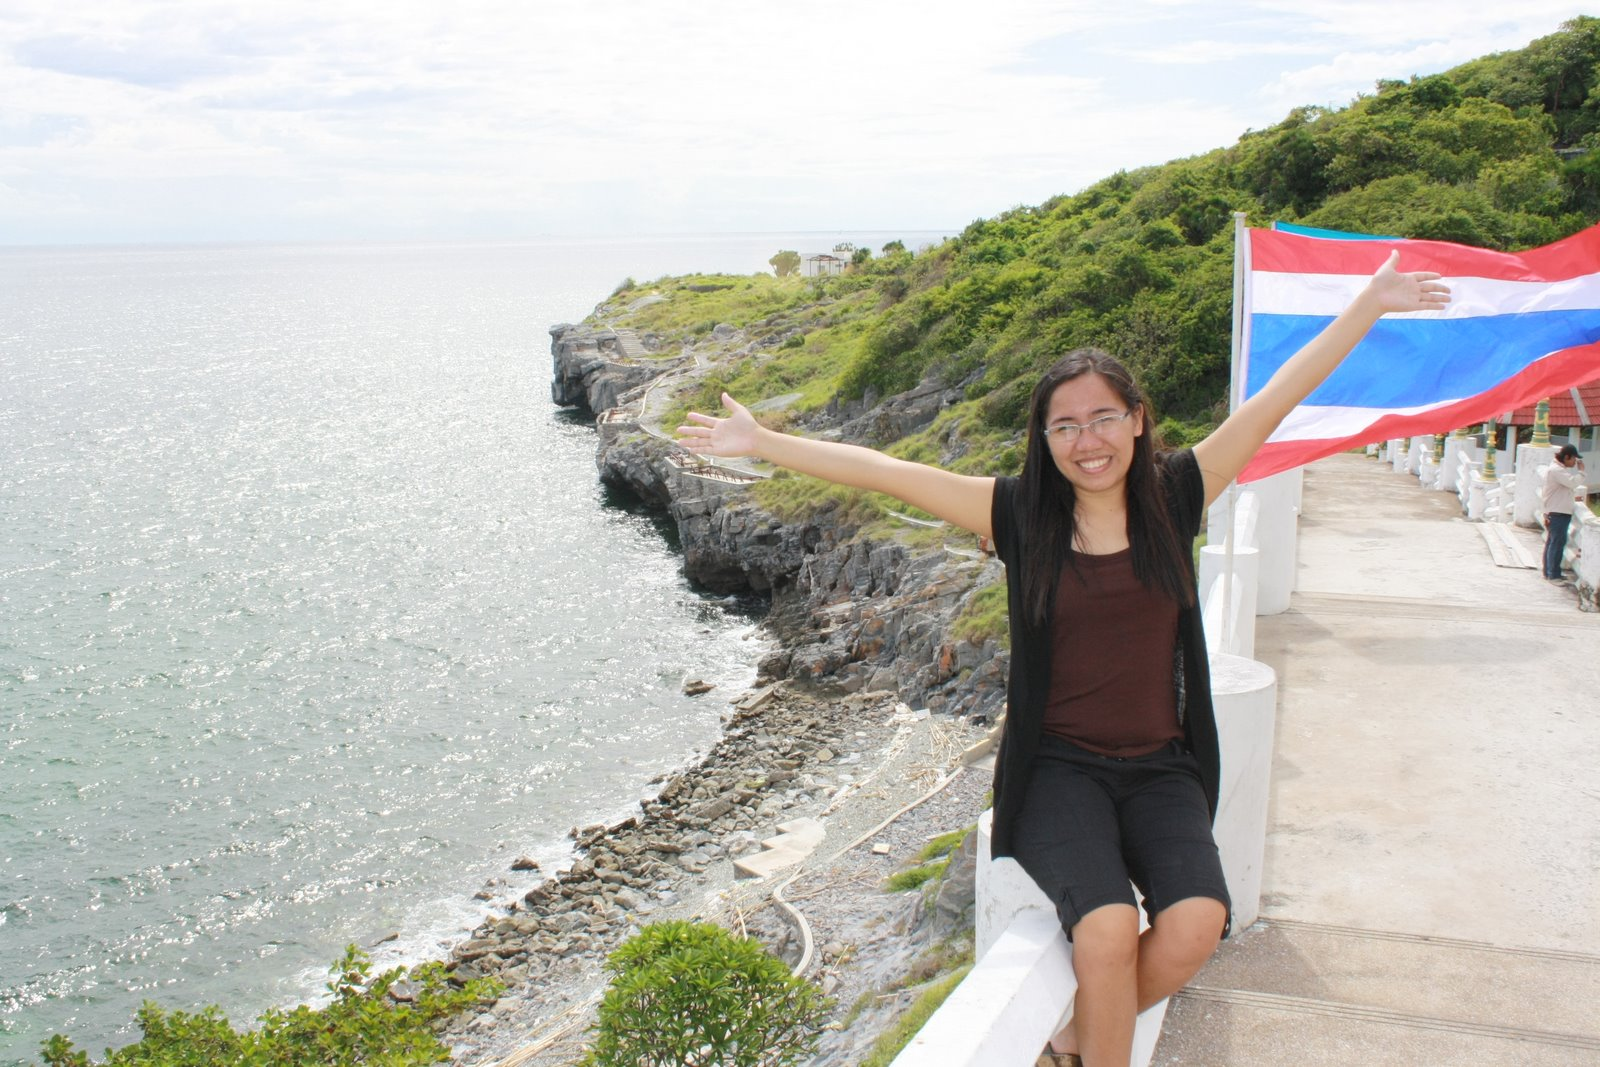 Wat Yai Prik The Gulf Coast Beaches, Koh Sichang | Fall in Love with God and His Creation